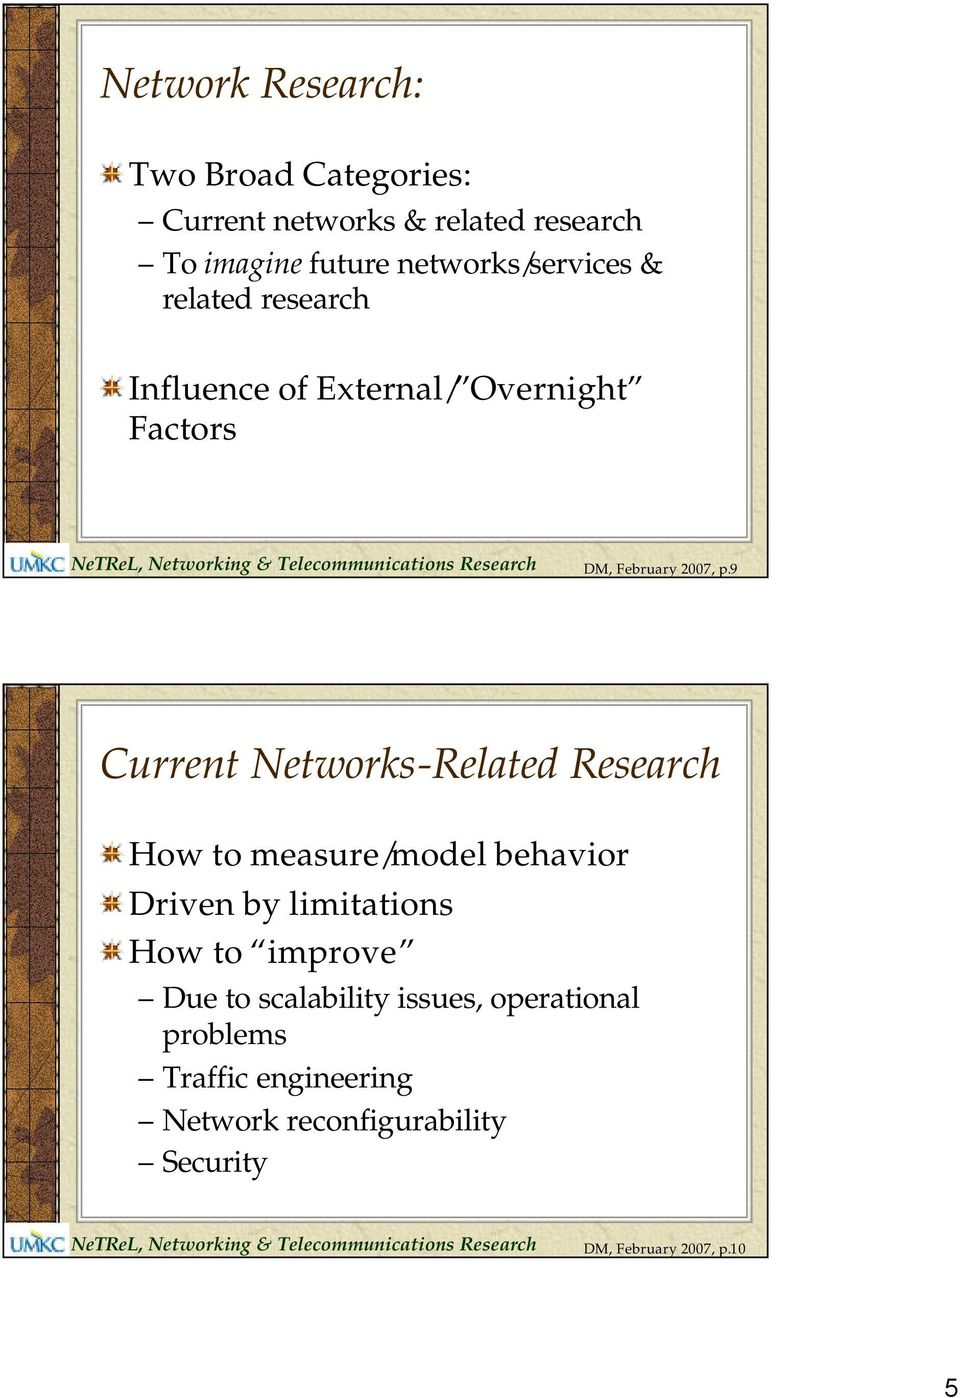 9 Current Networks-Related Research How to measure/model behavior Driven by limitations How to improve